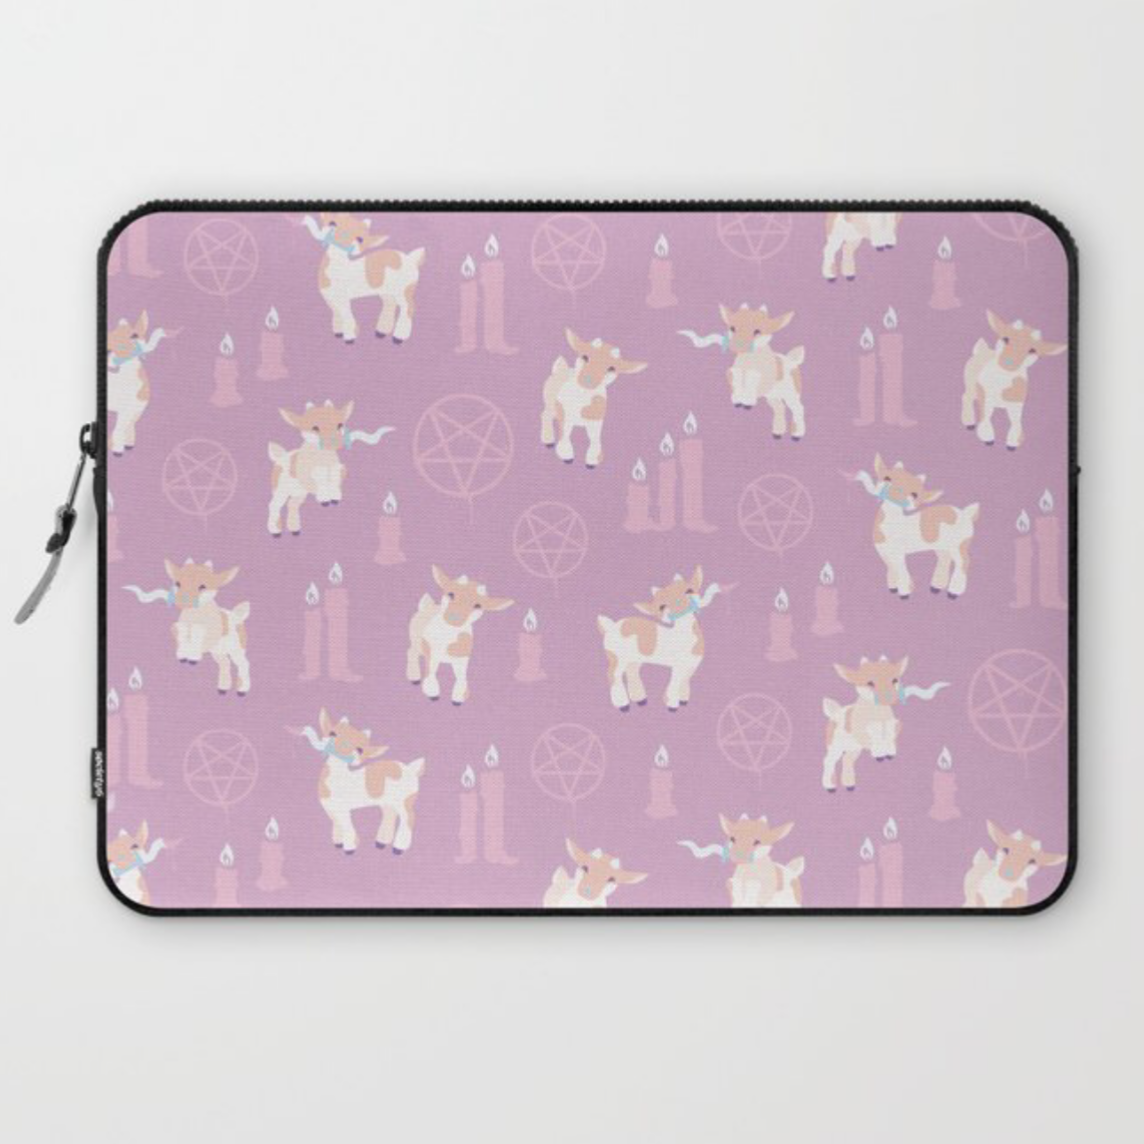 The kids are alright laptop case from Society6